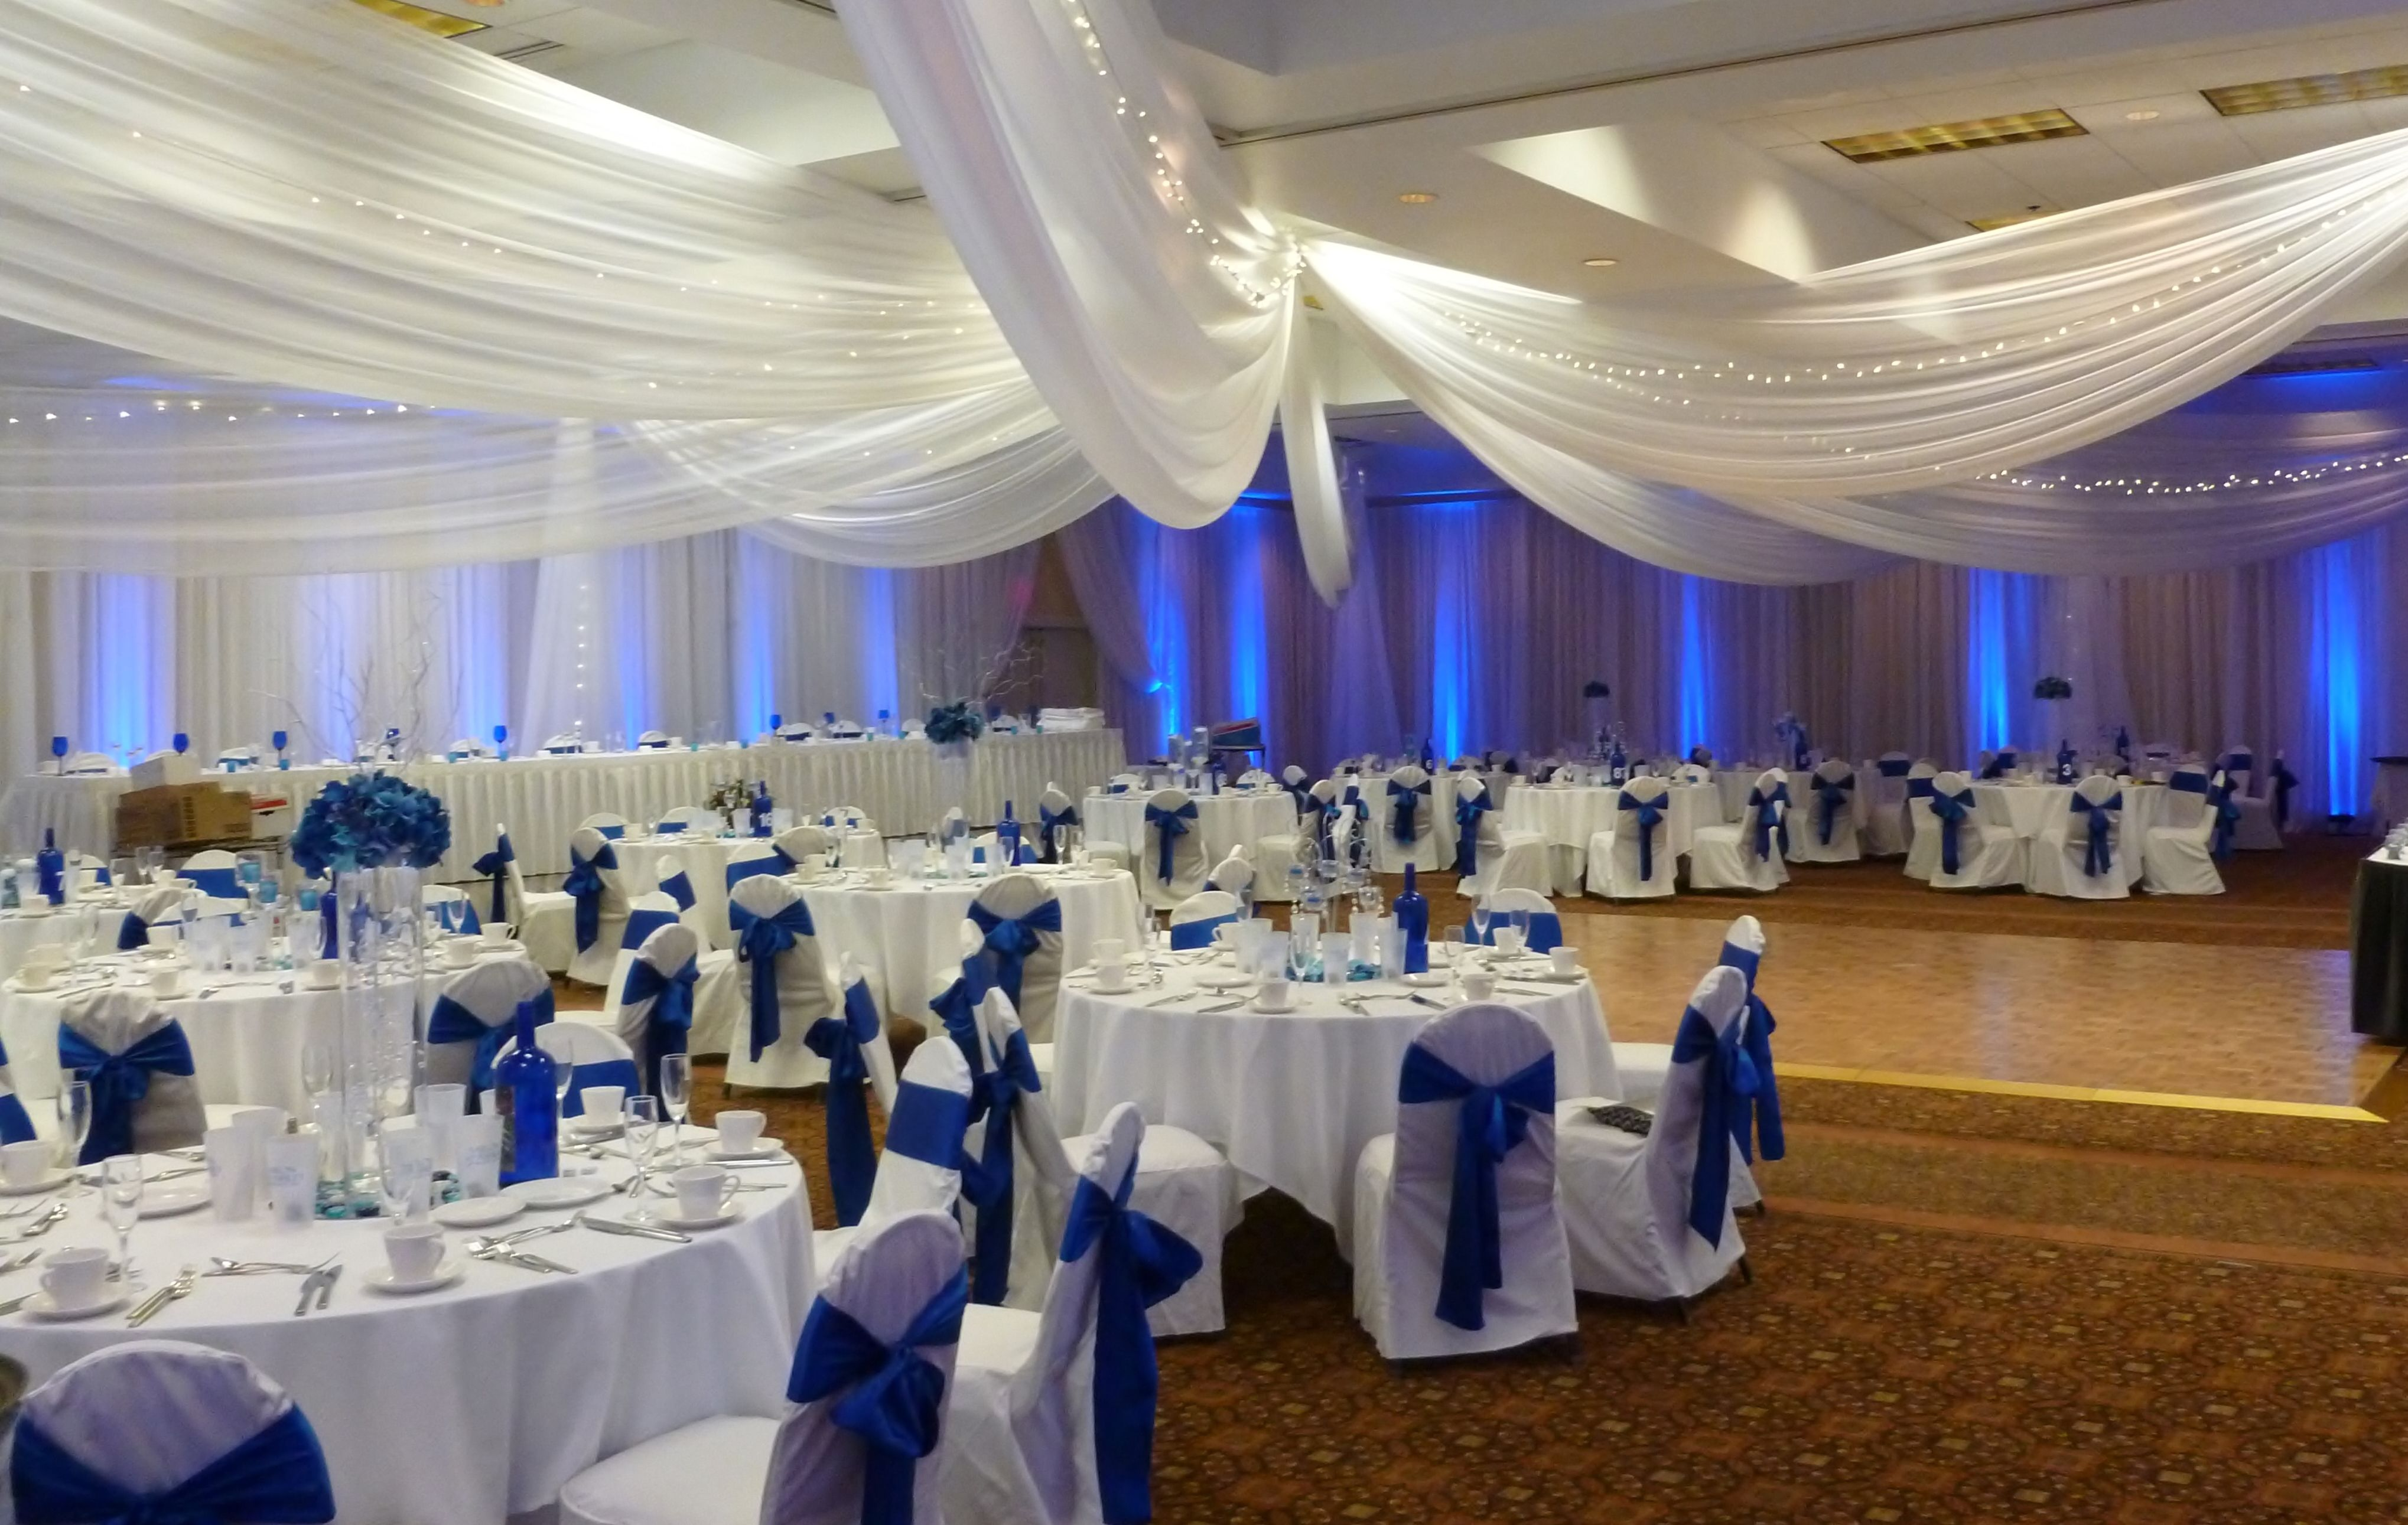 white chair covers with ivory sash cr plastics adirondack chairs review ceiling drape royal blue